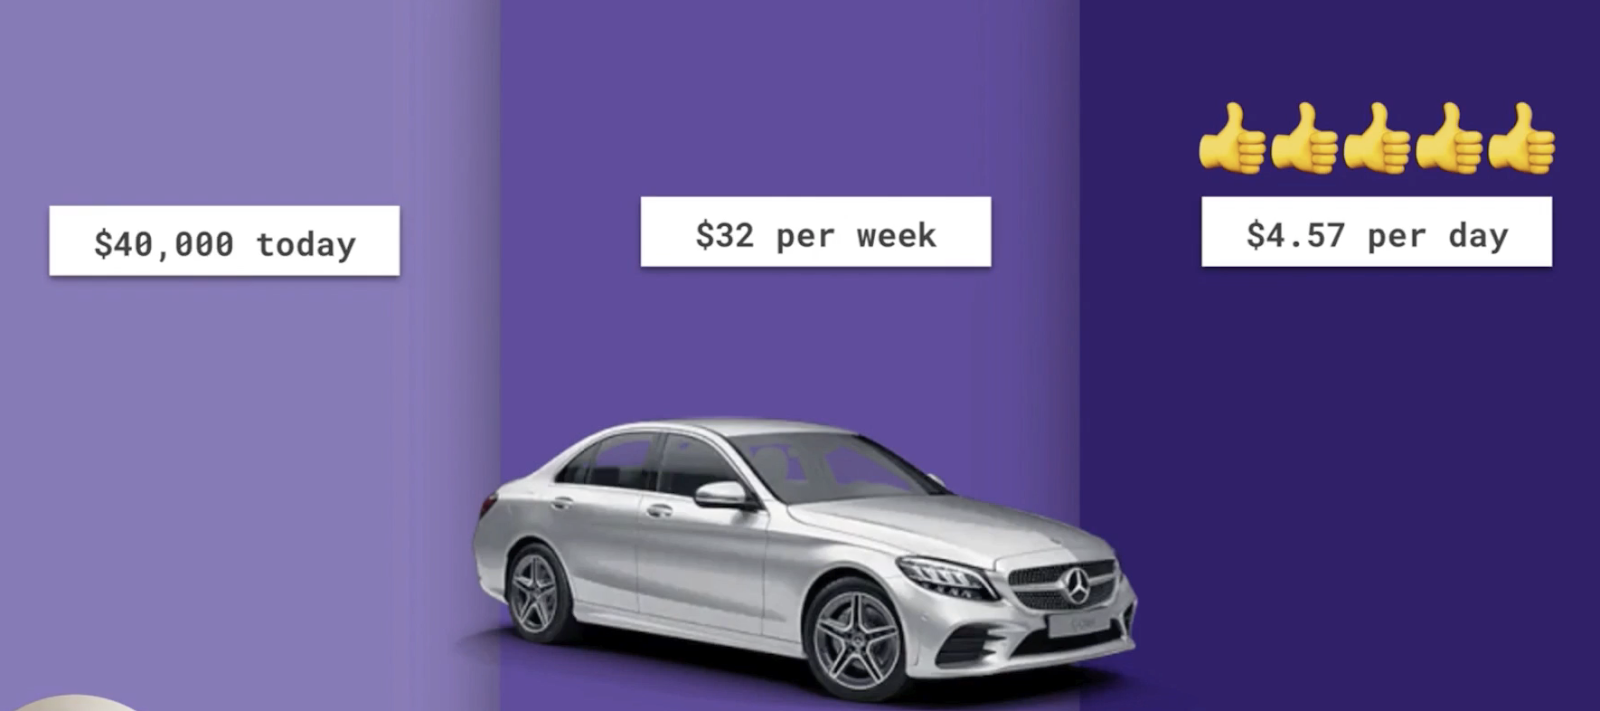 Following research, users found the idea of paying $4.57 a day for the Mercedes Benz preferable than $32 per week, or $40,000 in one hit.